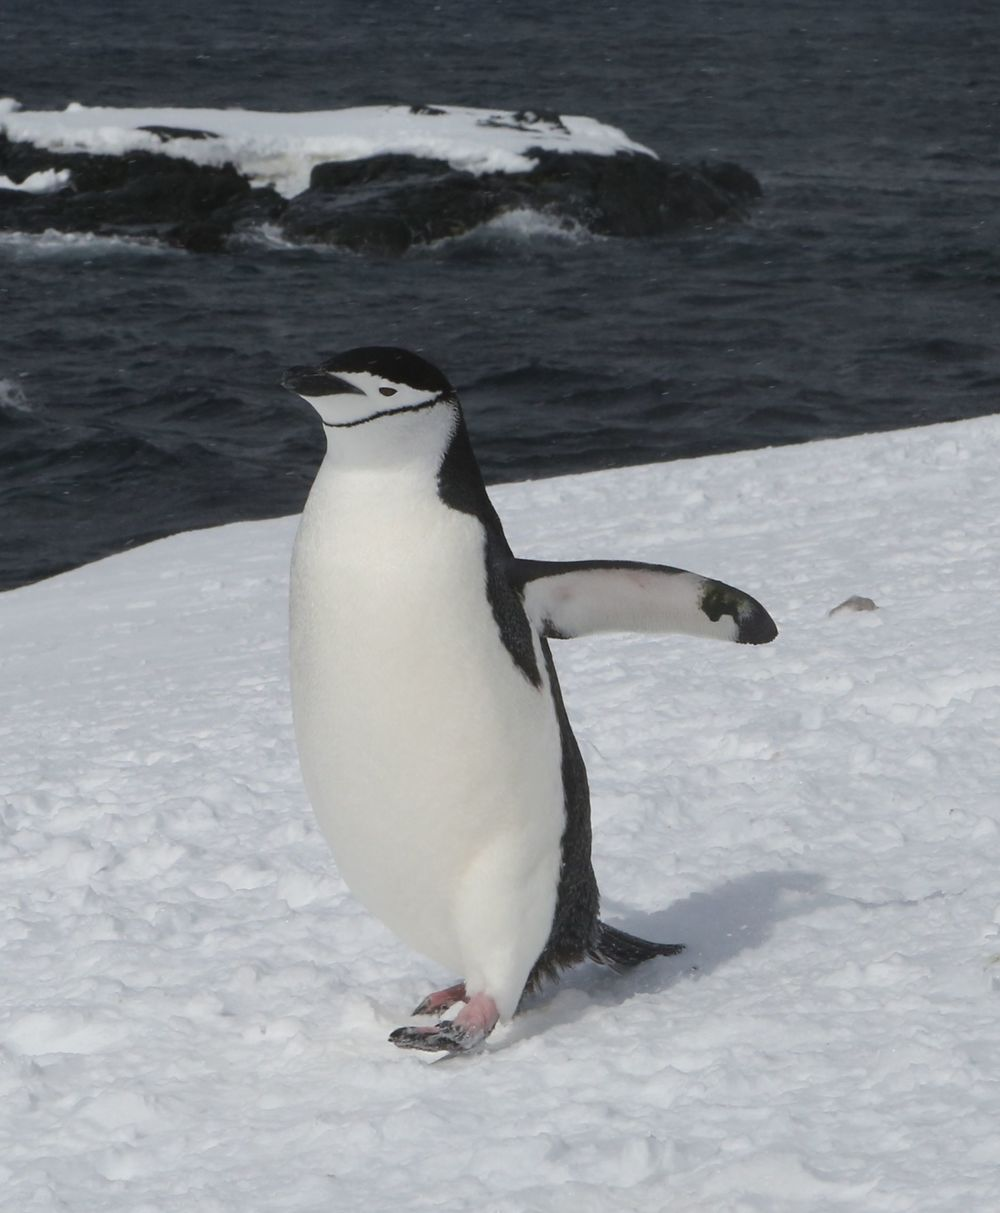 Surprise! Suddenly a lone chinstrap penguin was wandering around.